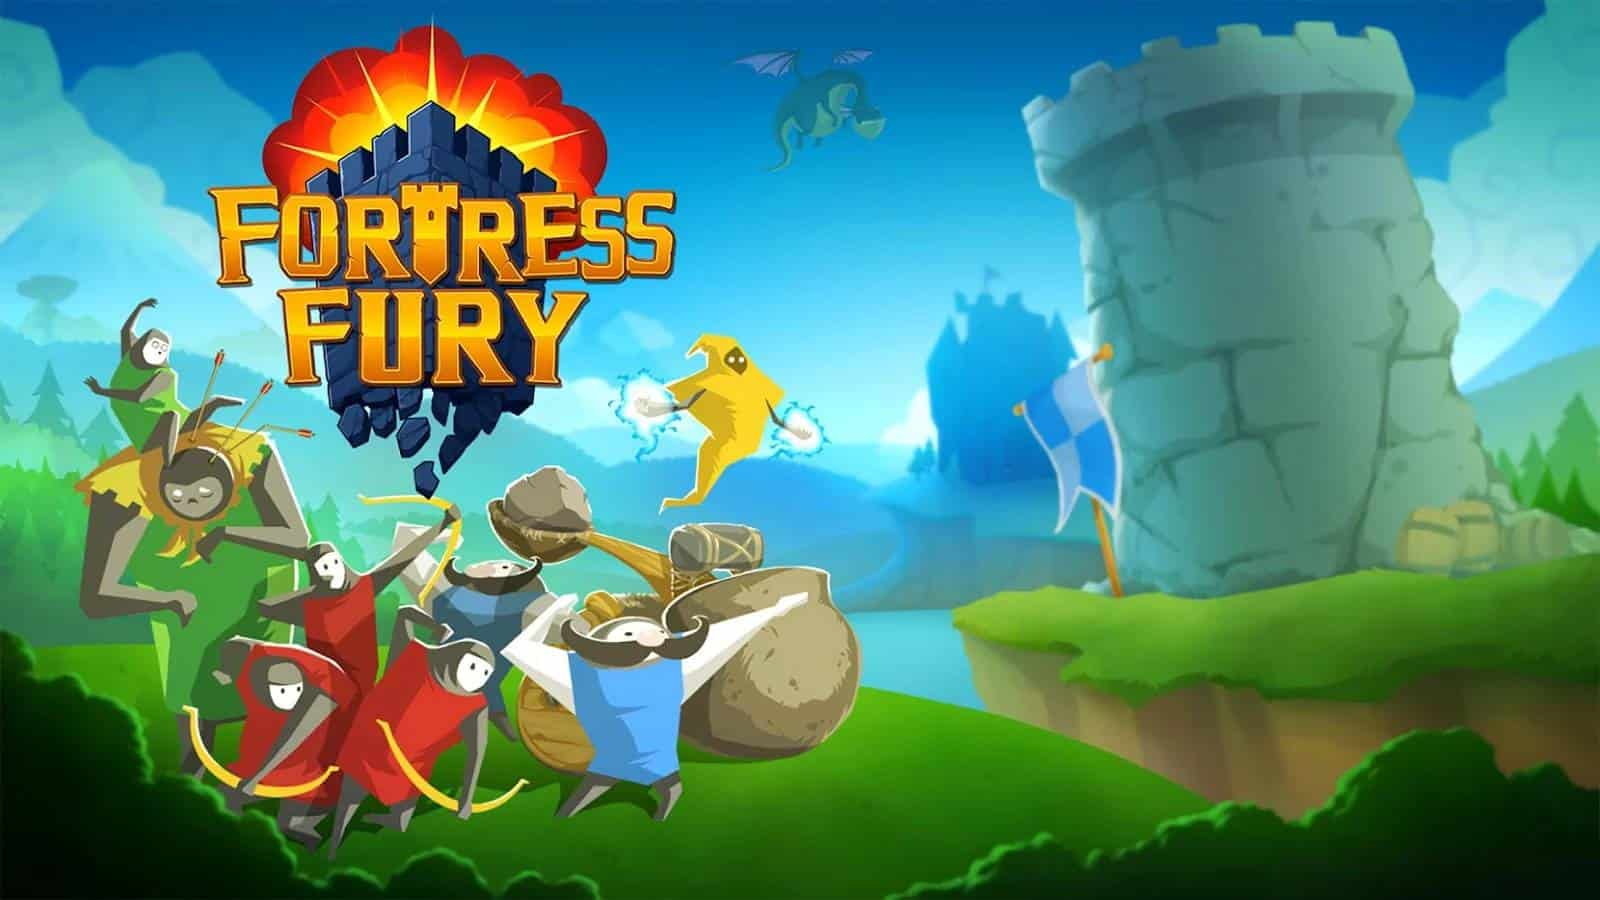 Fortress Fury